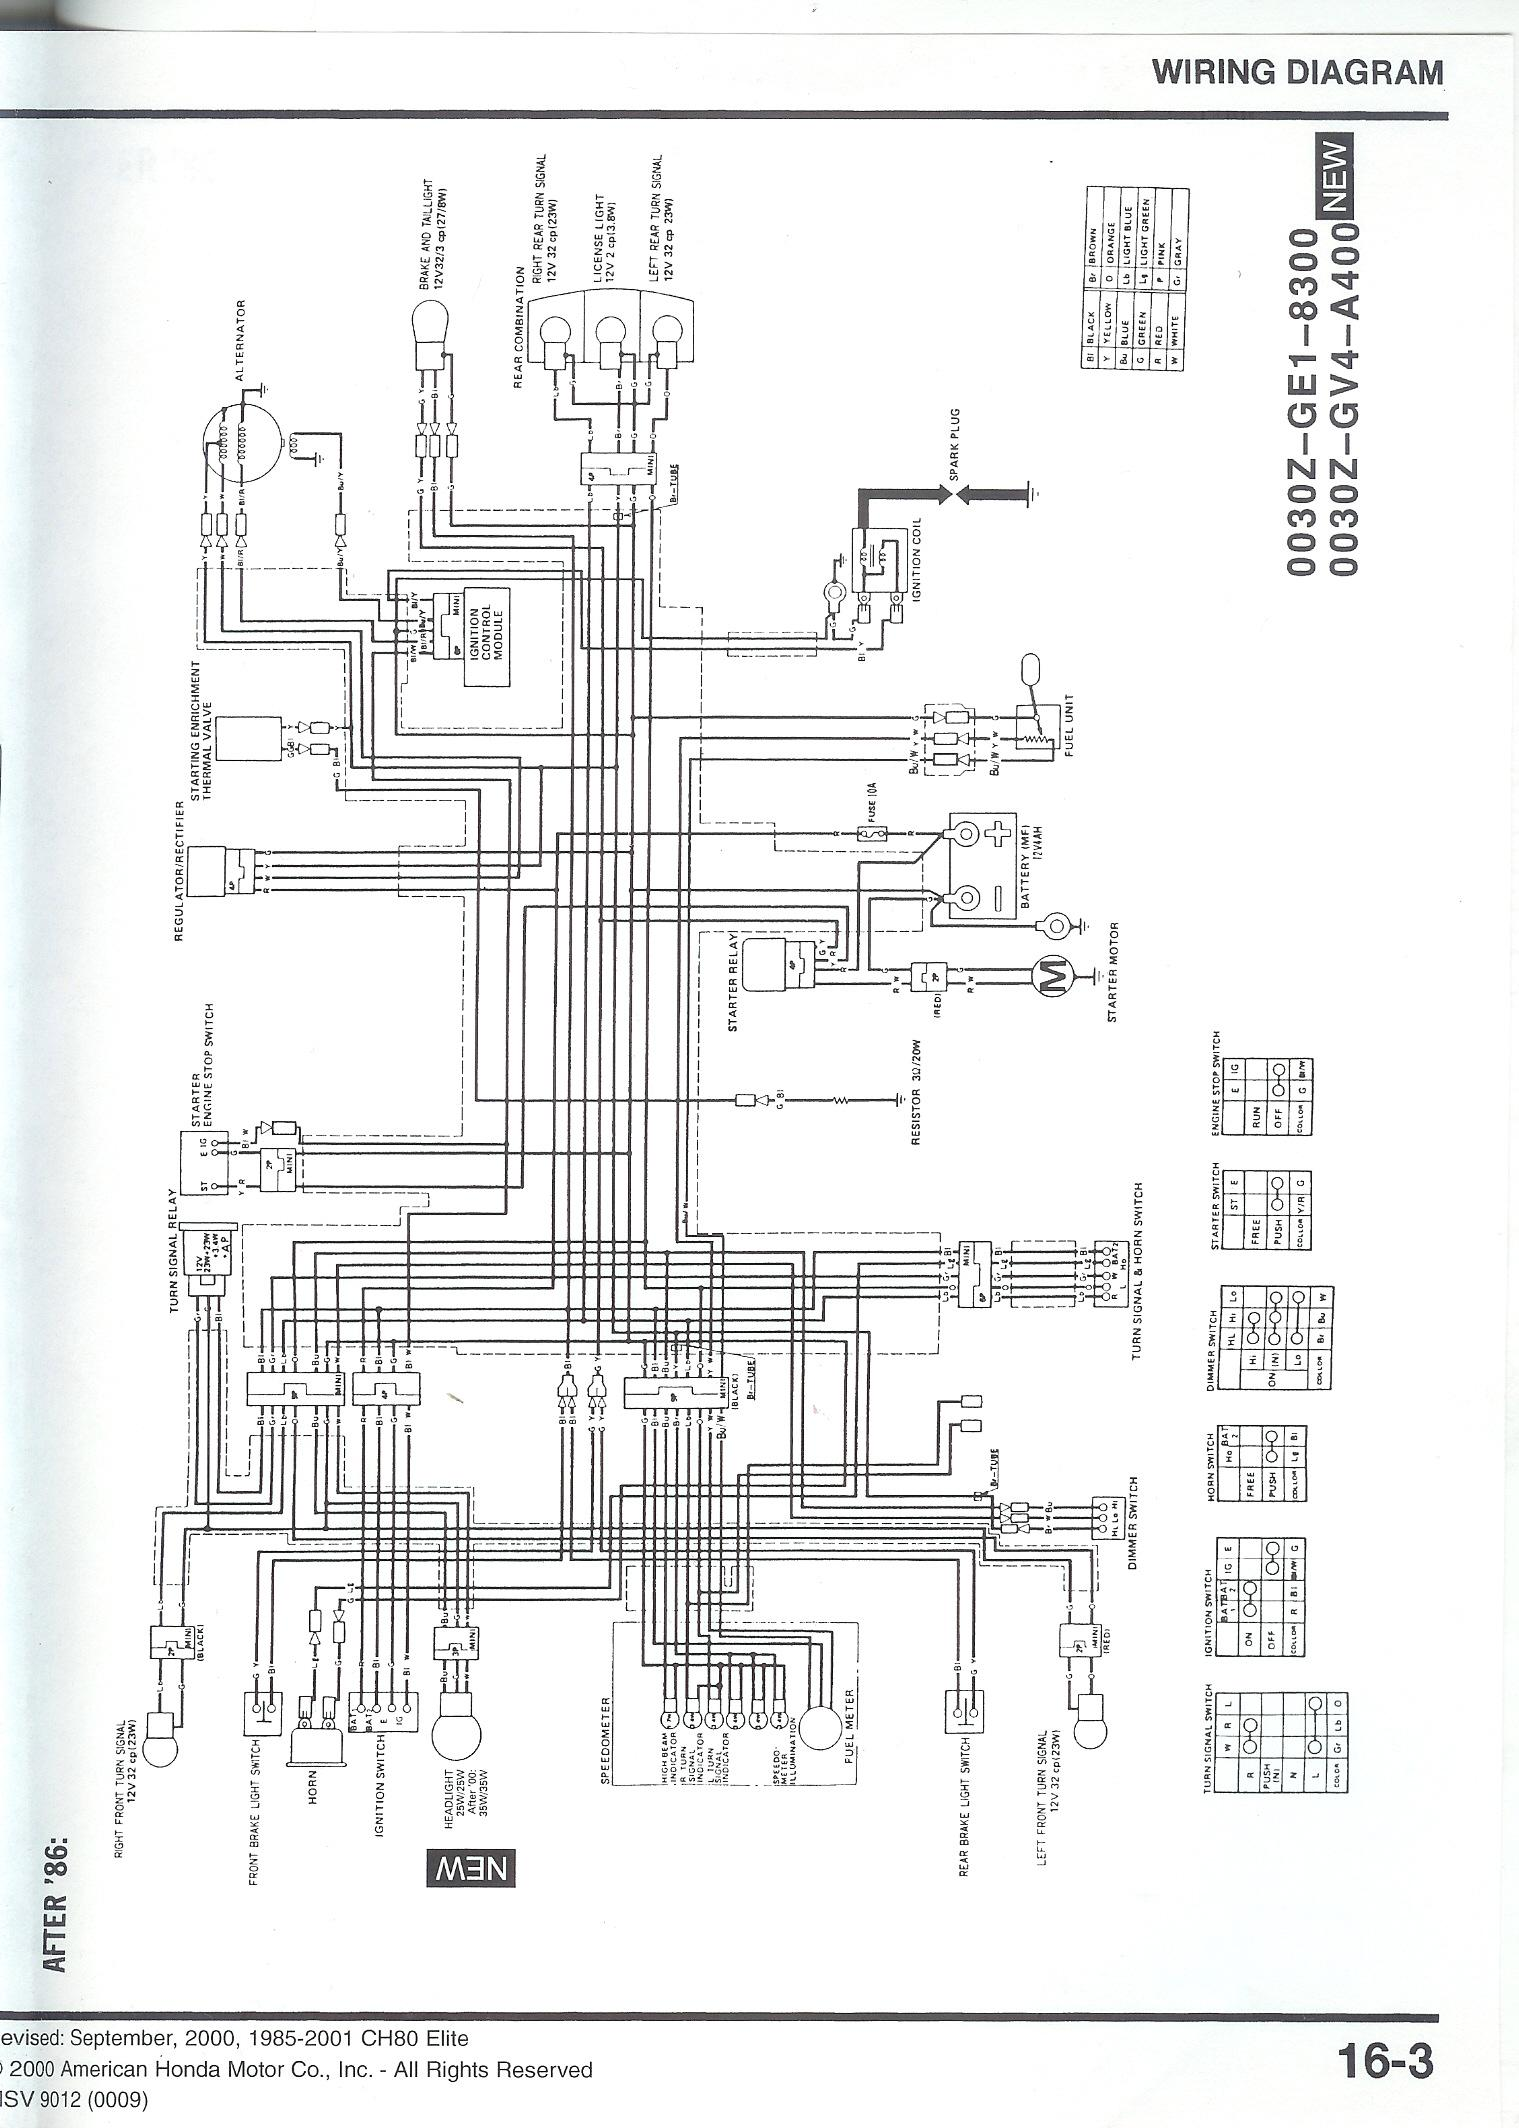 honda elite wiring diagram honda wiring diagrams